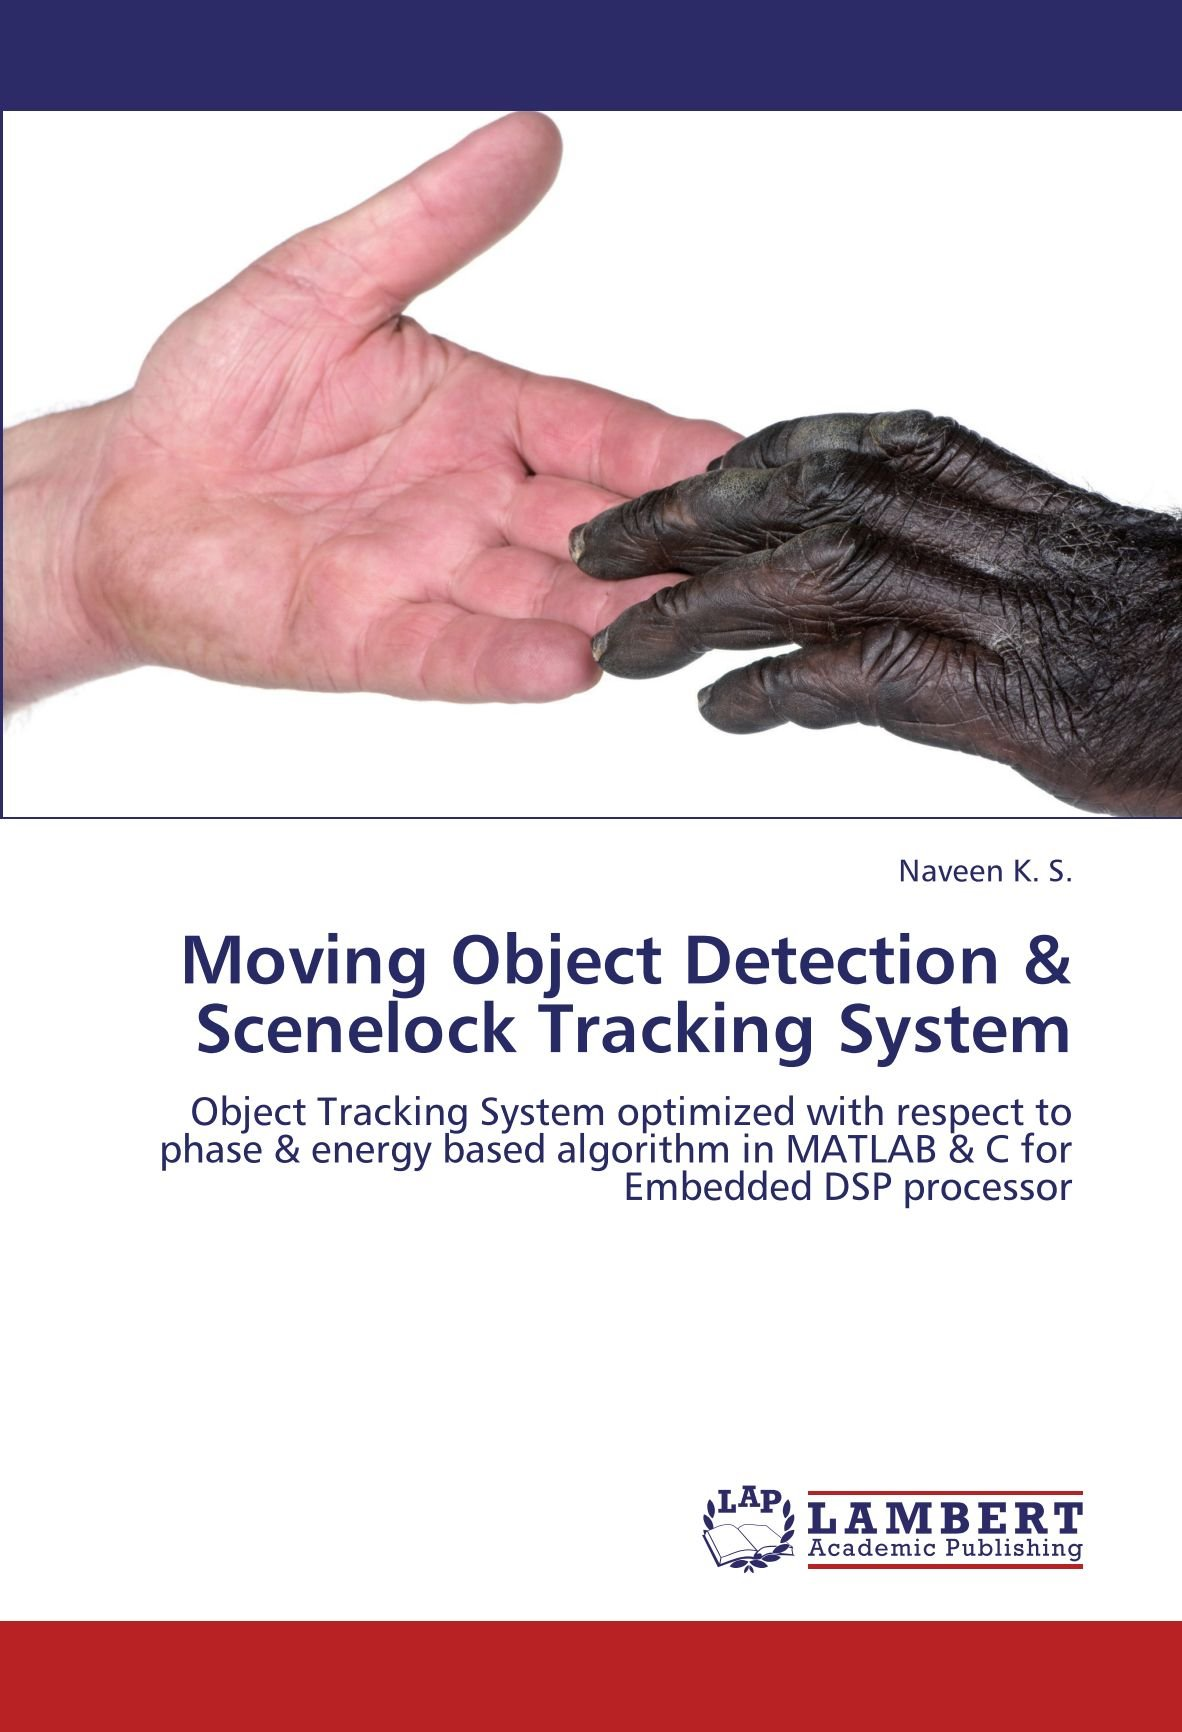 Moving Object Detection & Scenelock Tracking System: Object Tracking